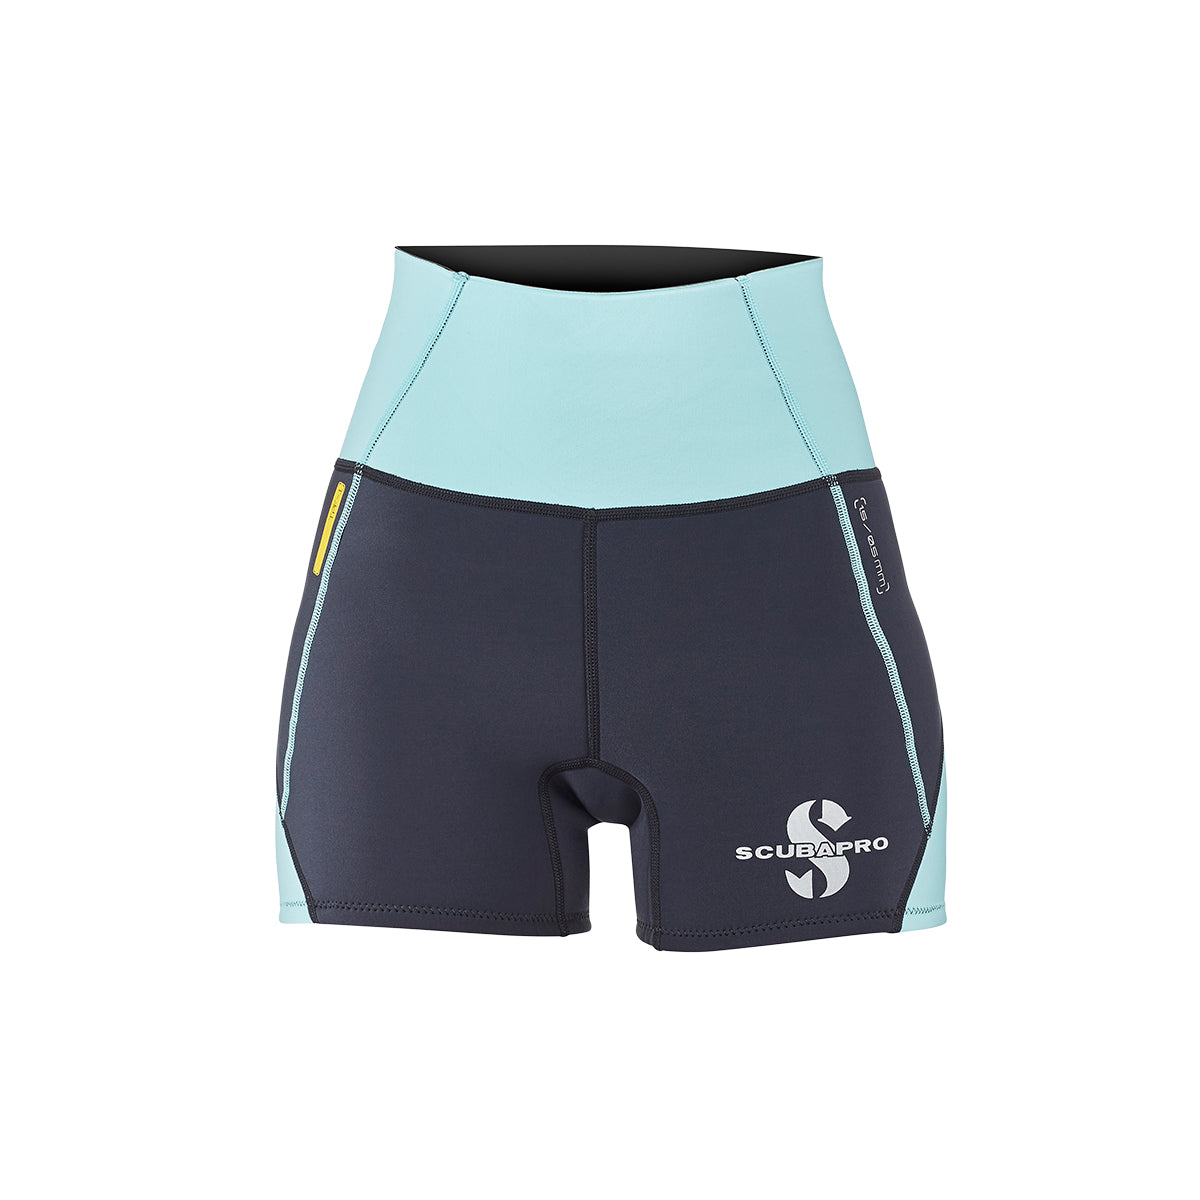 Woman's Everflex 1.5 mm Shorts